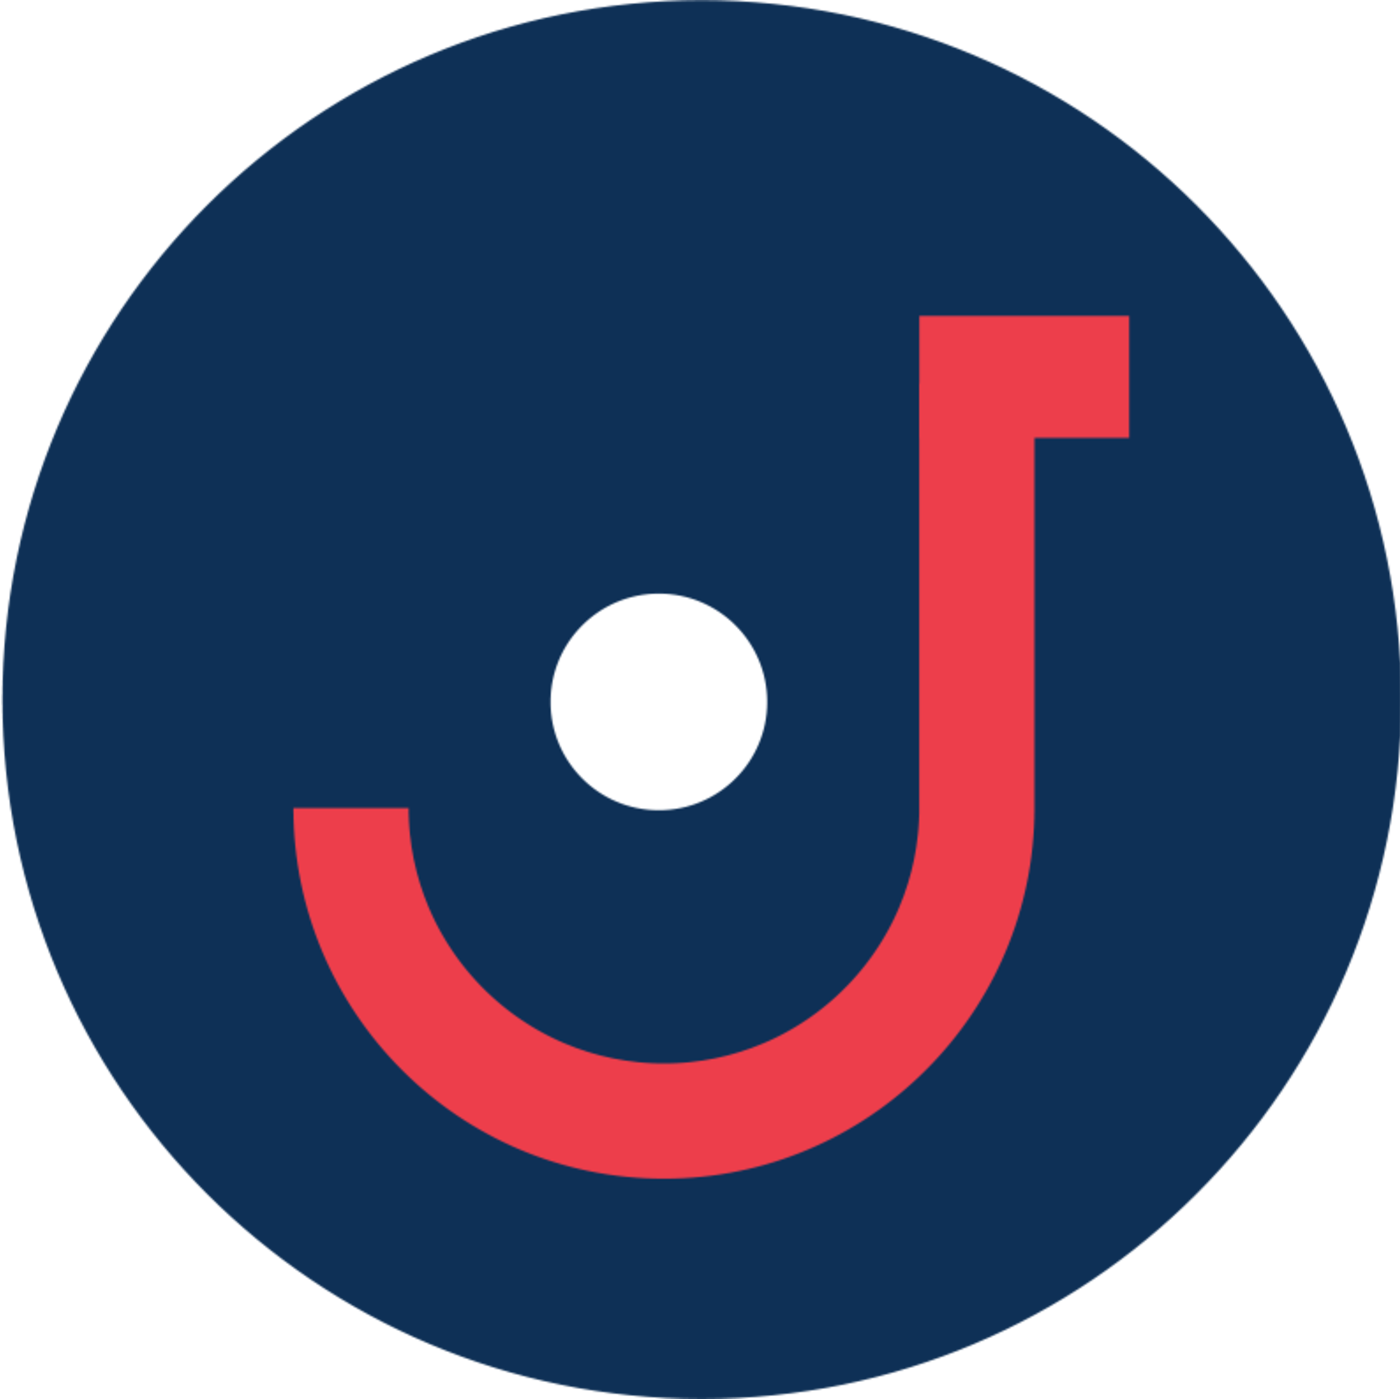 Xmal User Experience Engineer 0025 Job At Jibio In Toronto Division Ontario Canada Powered By Jobscore